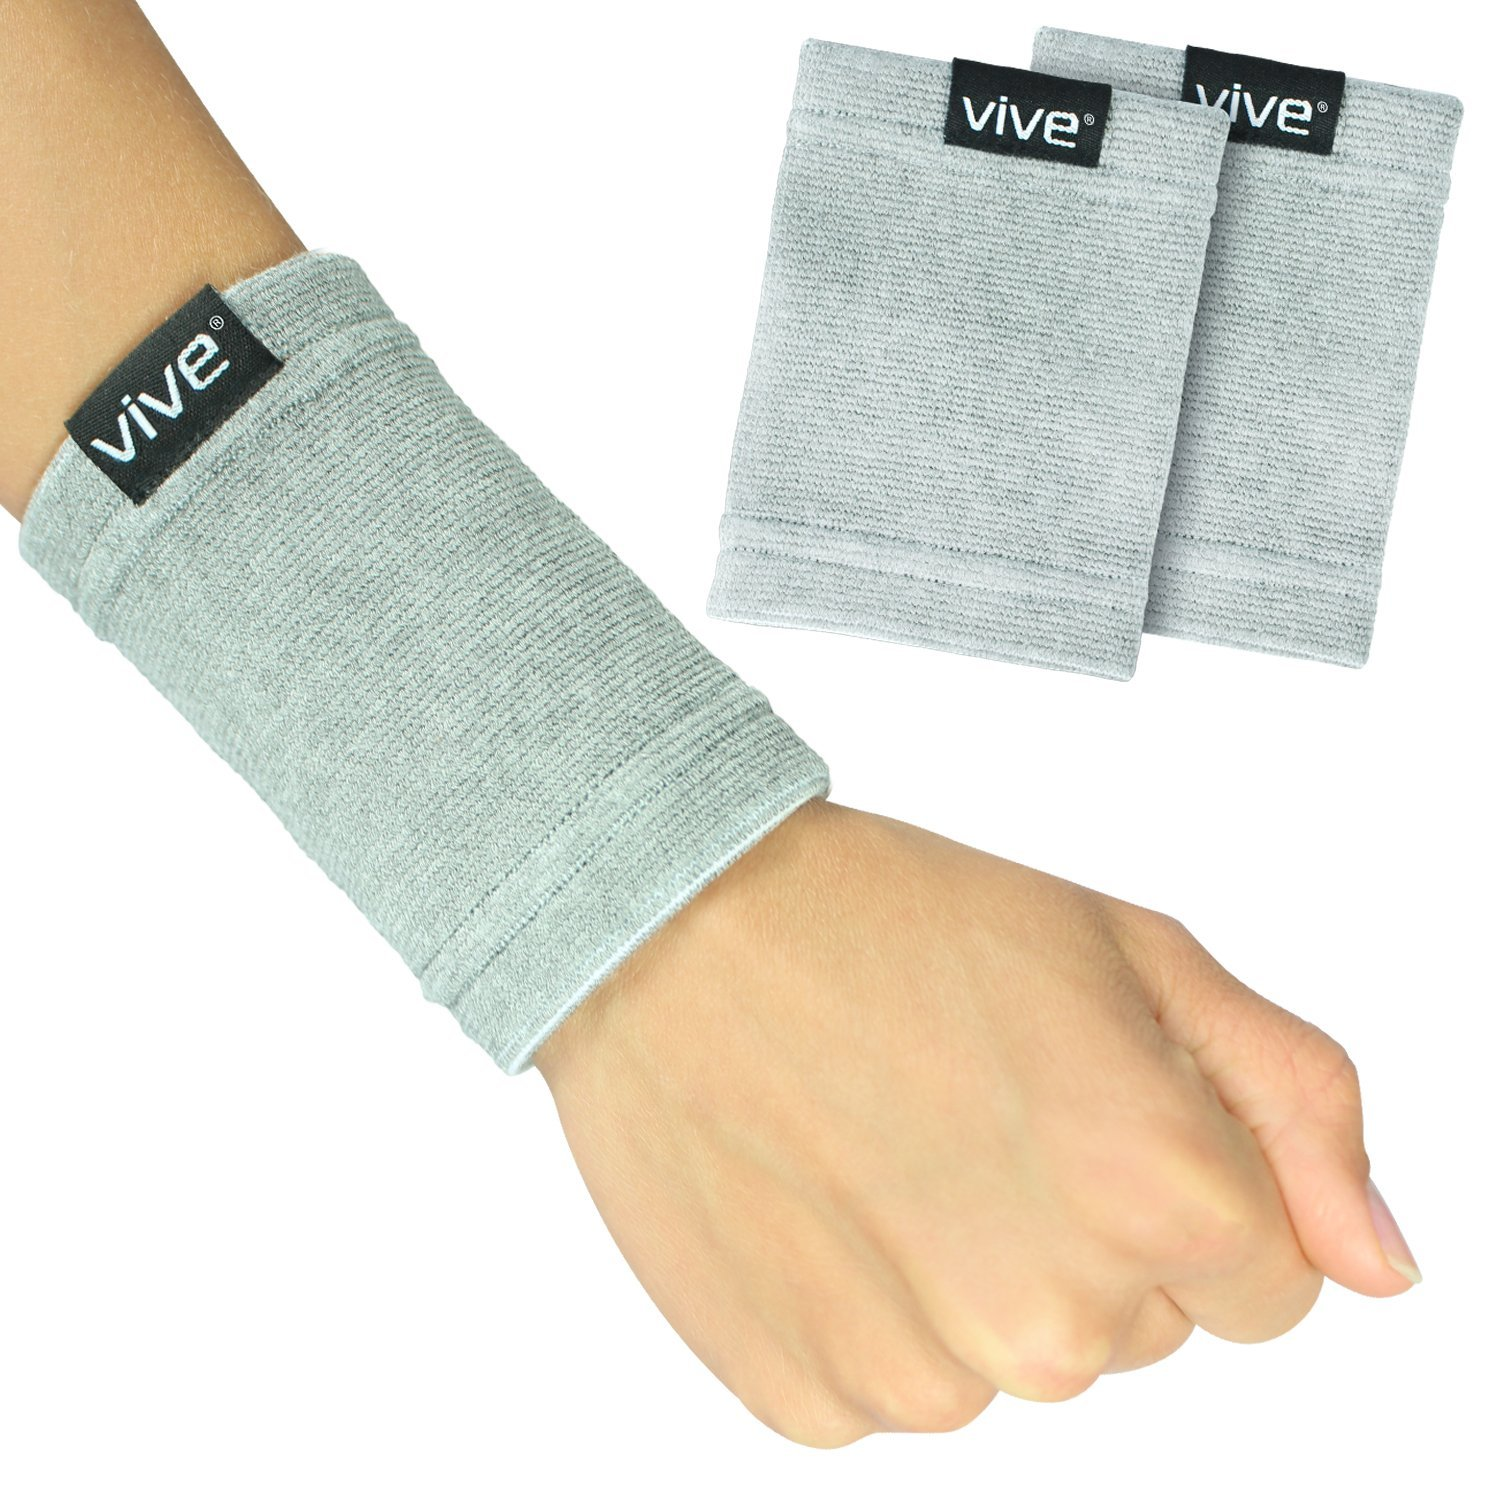 VIVE Wrist Sweatbands Reviw